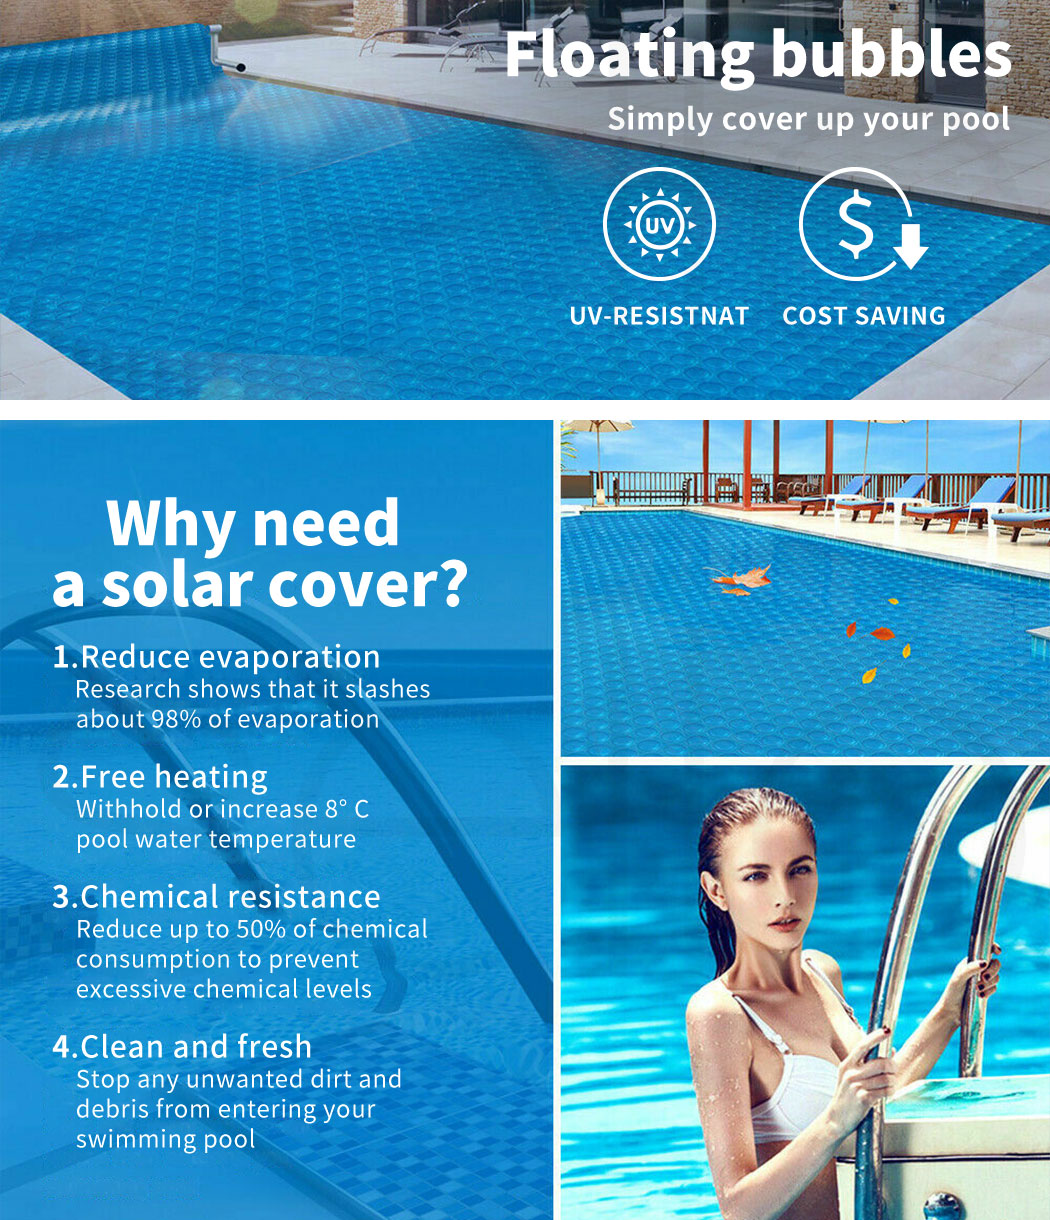 Solar-Swimming-Pool-Cover-400-500-Micron-Outdoor-Bubble-Blanket-Covers-7-Sizes thumbnail 14